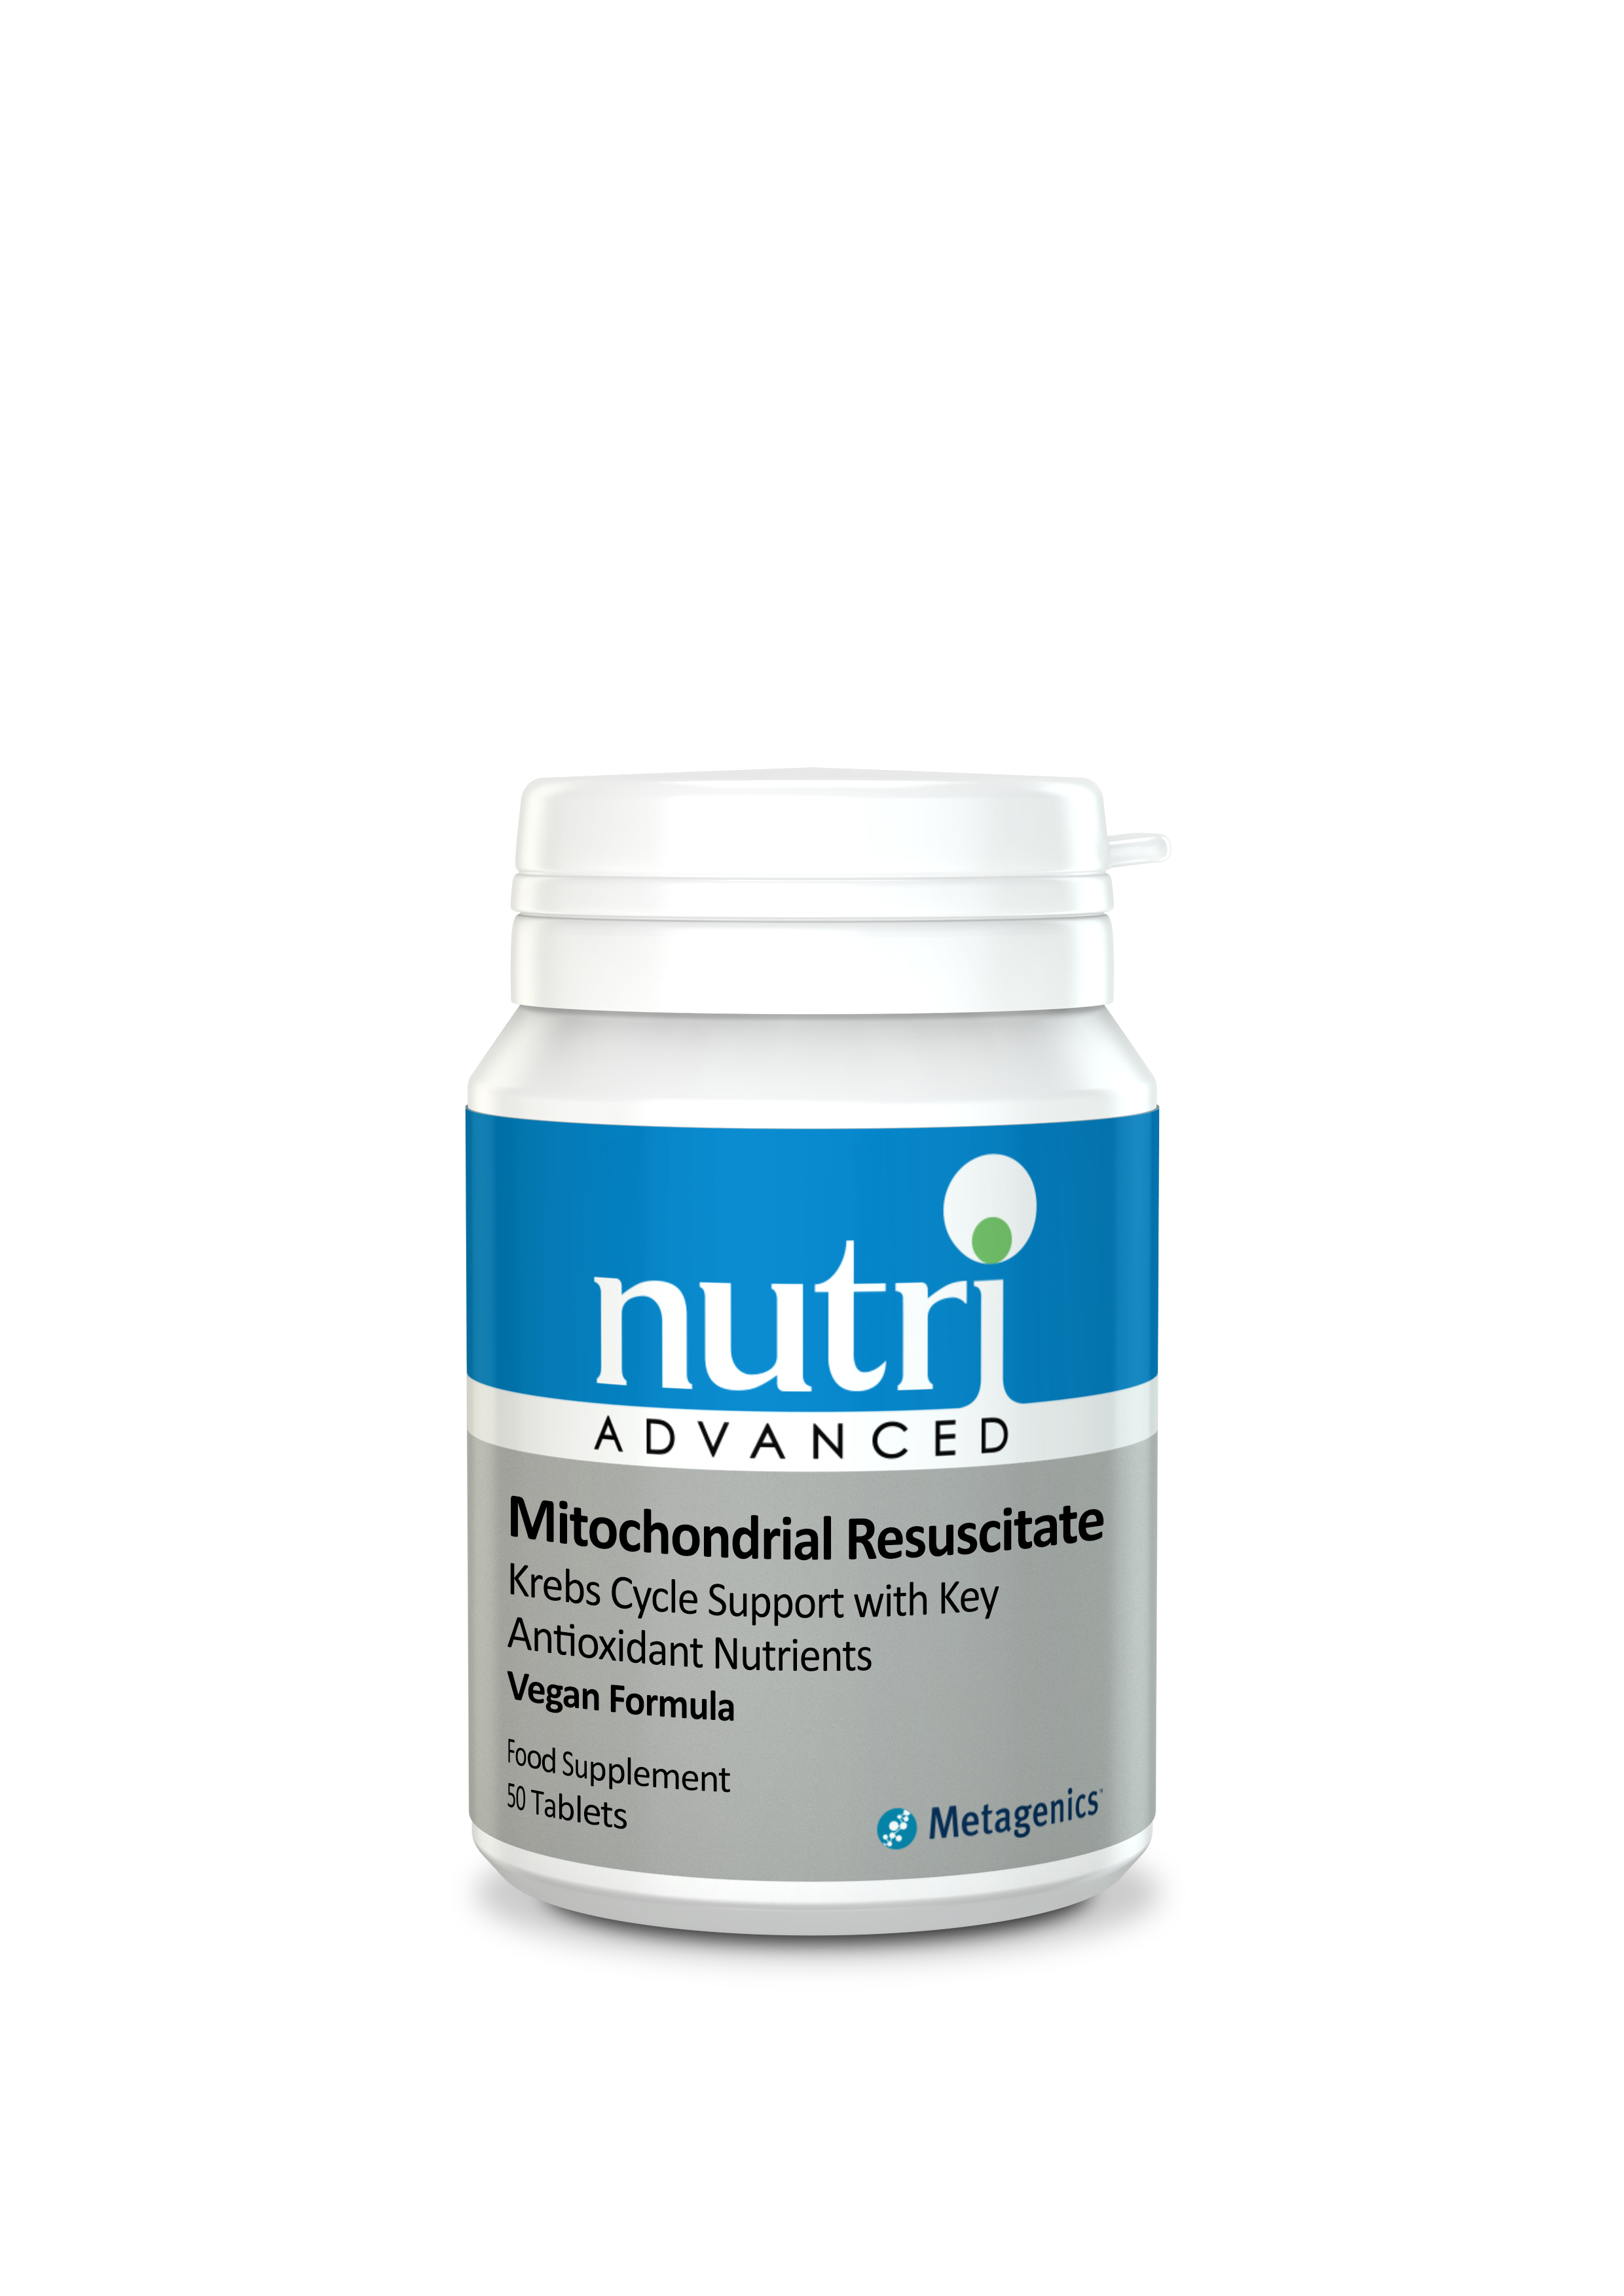 Nutri Advanced Mitochondrial Resuscitate (50)